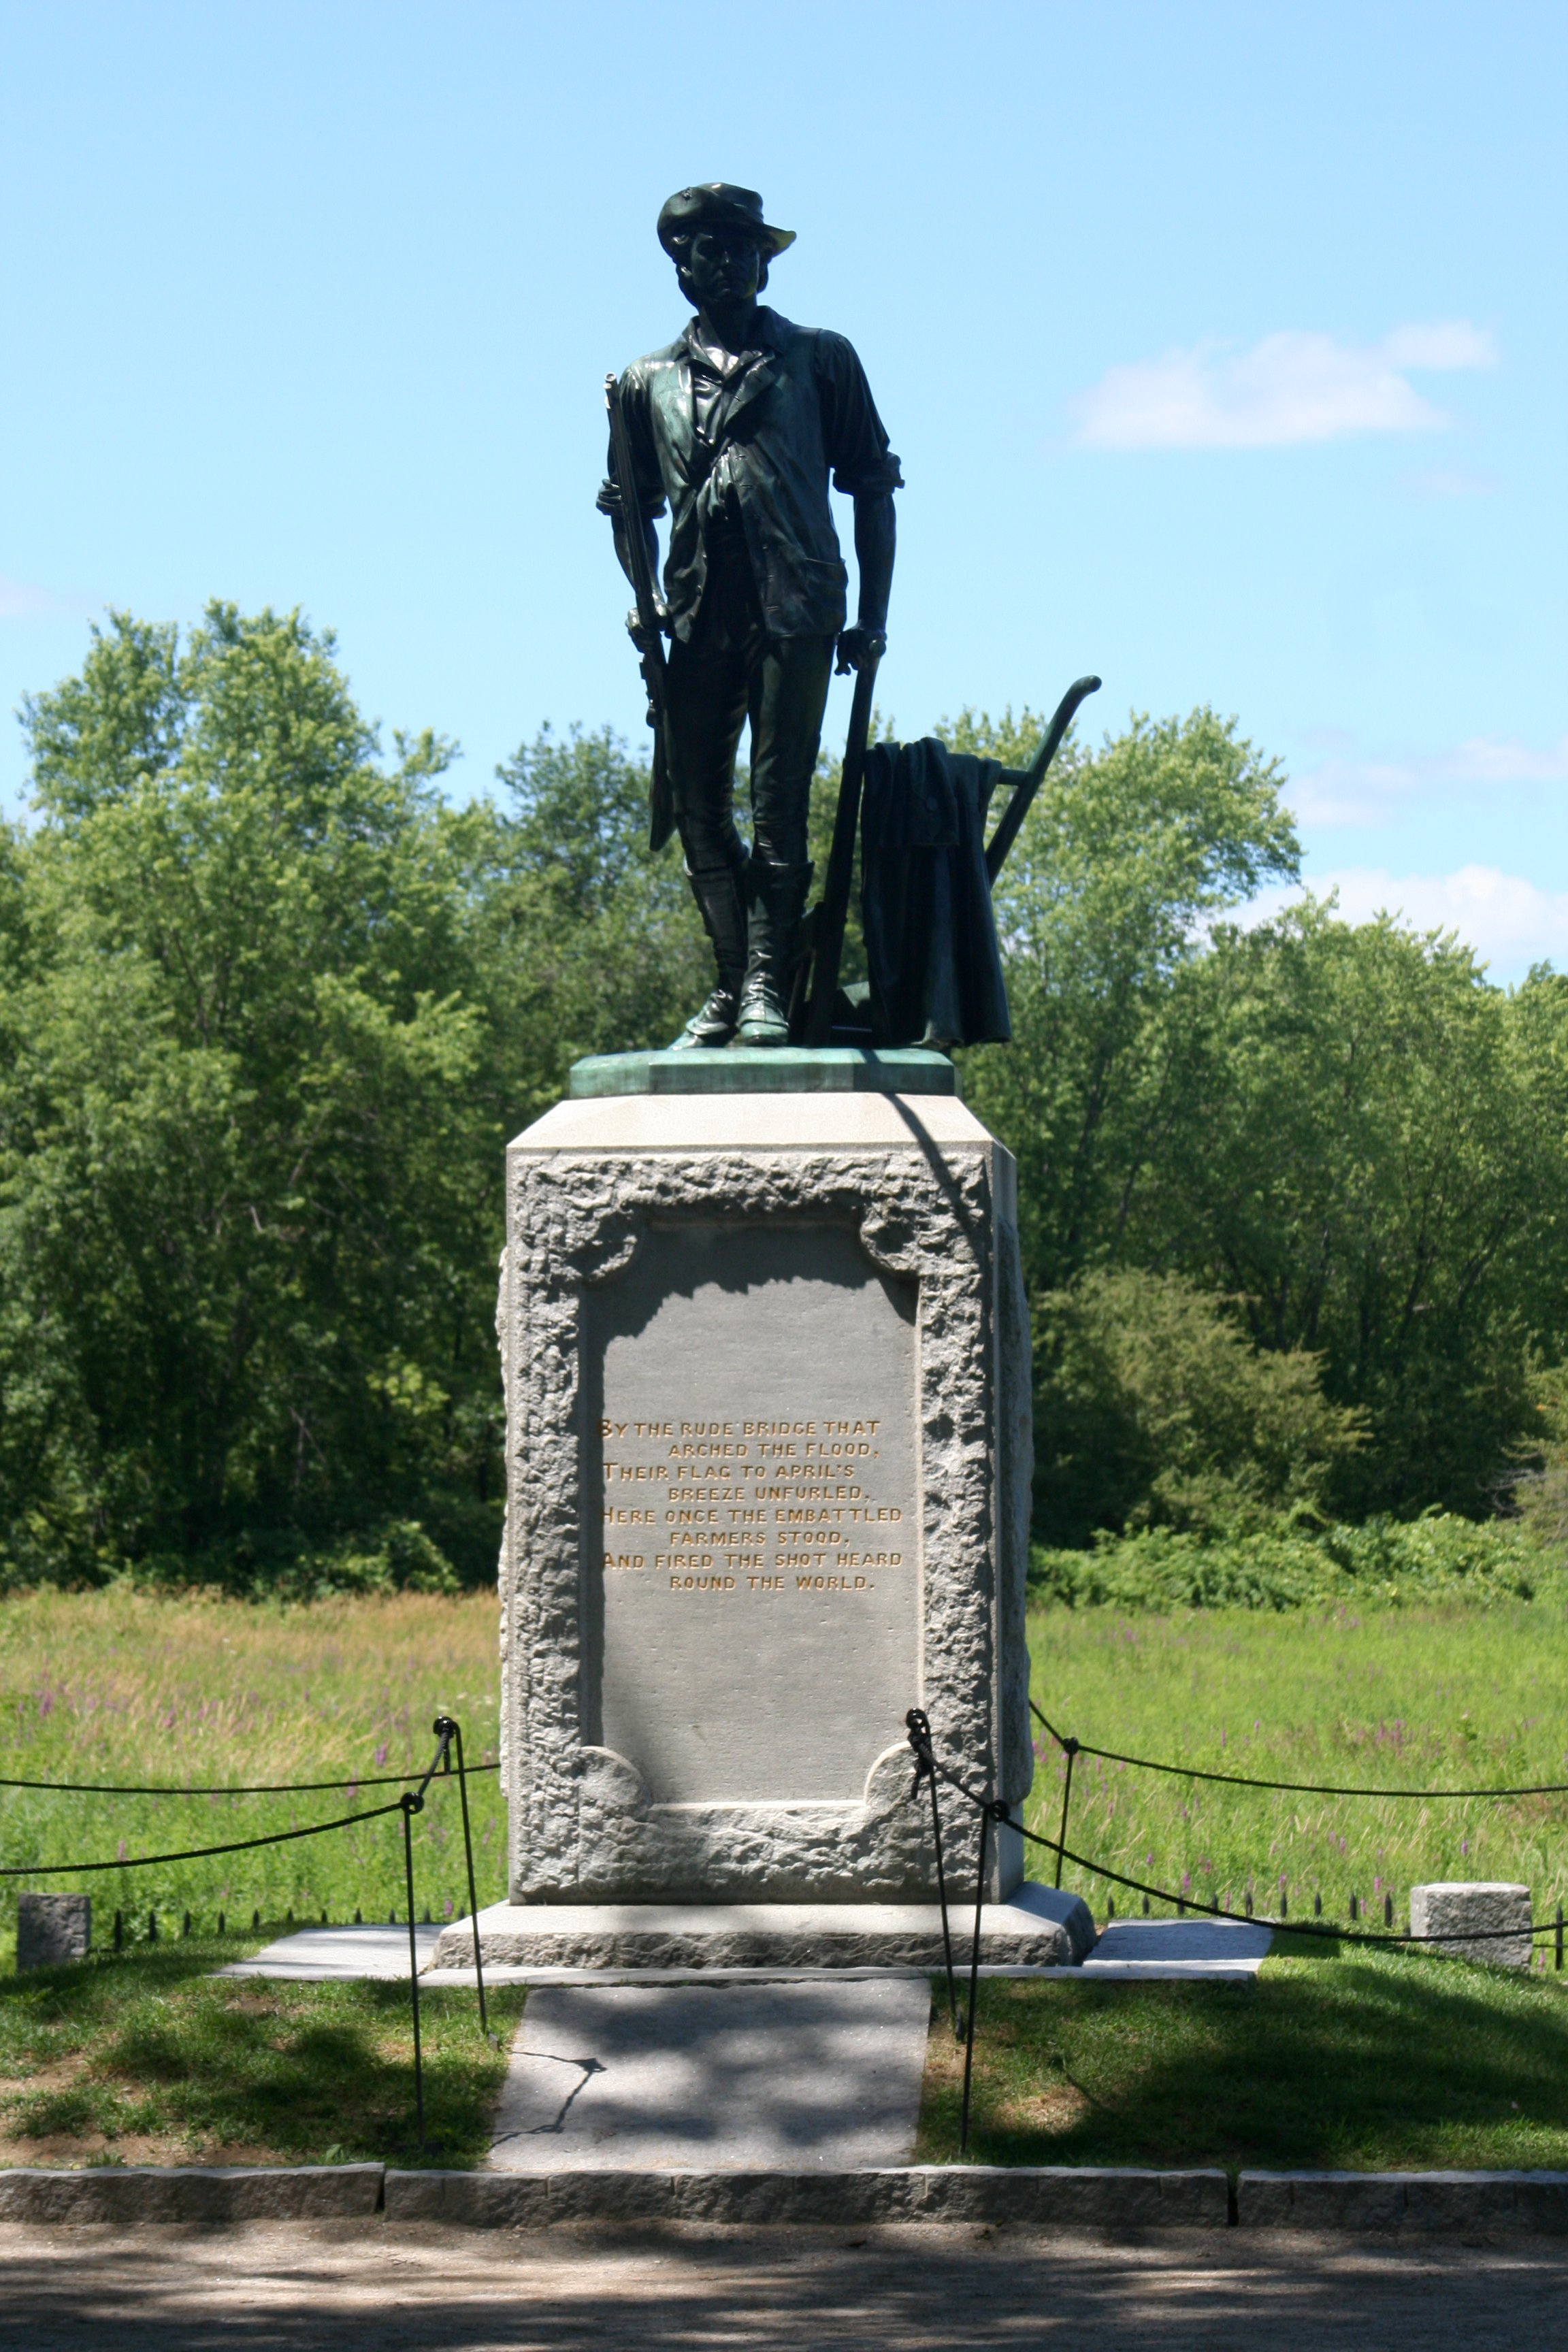 Statue memorializing the battle at Old North Bridge, Concord, Massachusetts, inscribed with verse from Emerson's